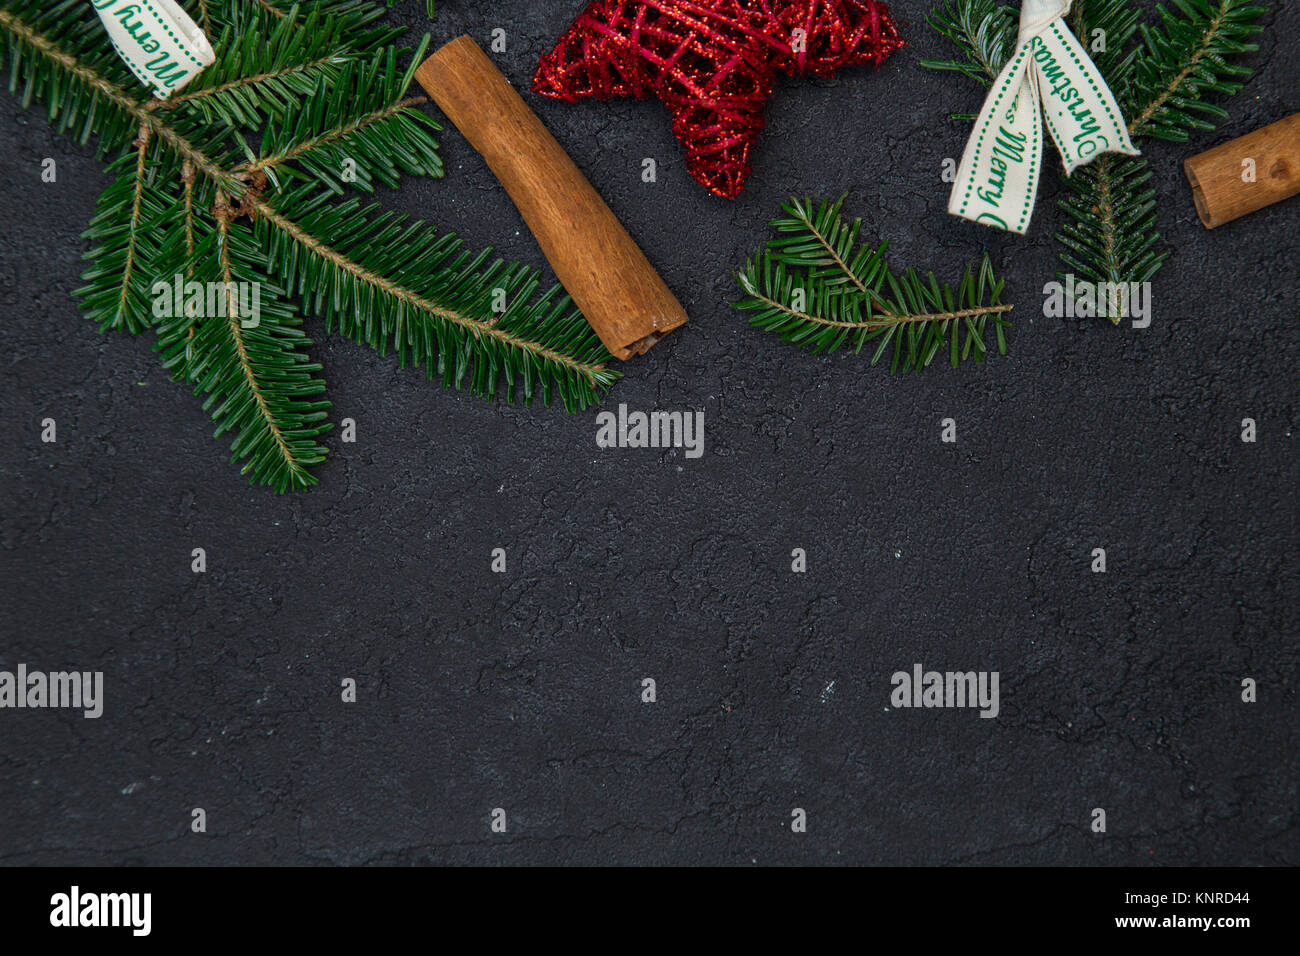 black concrete christmas or new year background with a top border of sruce branches white bows red stars and cinnamon sticks space for your text or